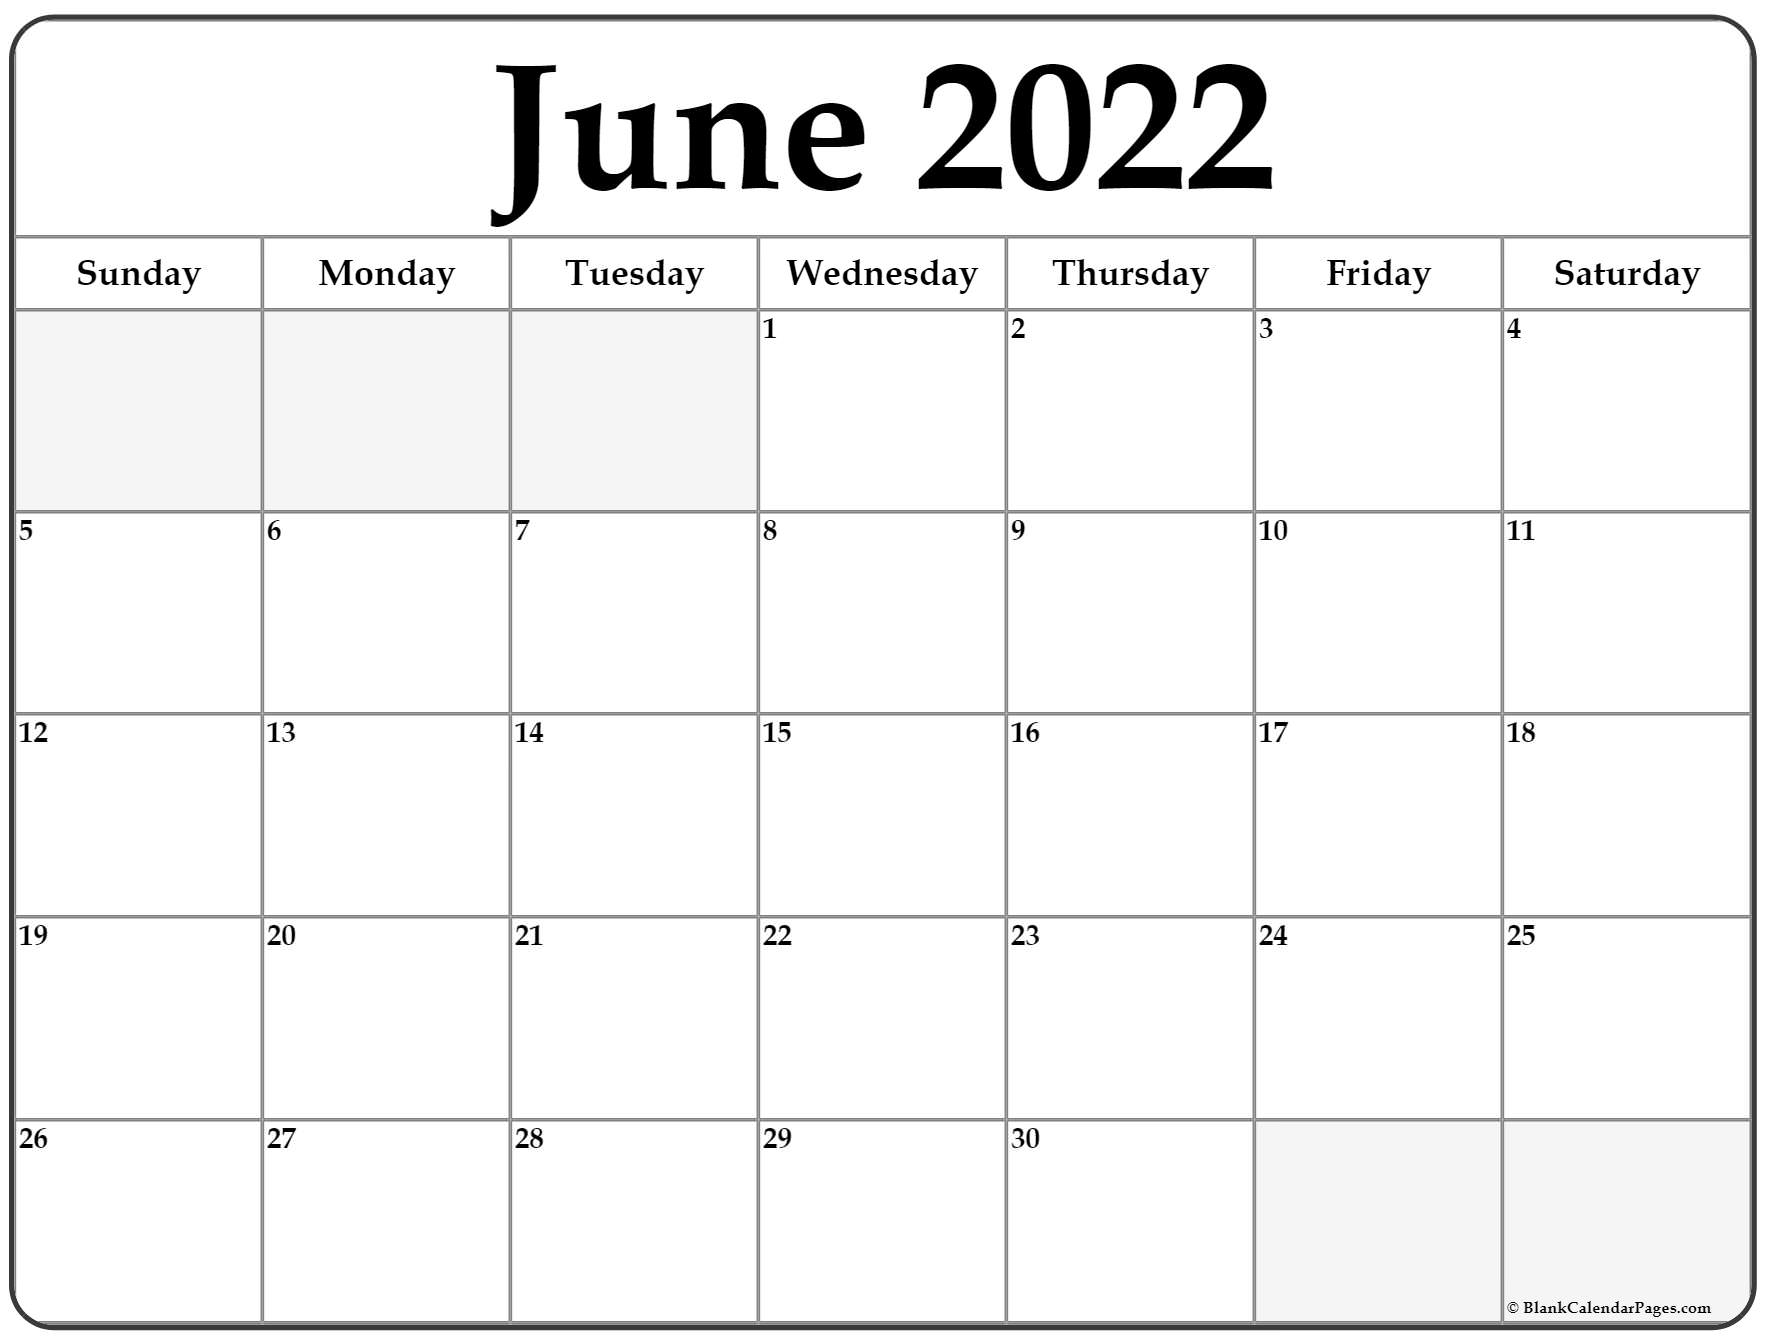 June 2022 calendar | free printable monthly calendars